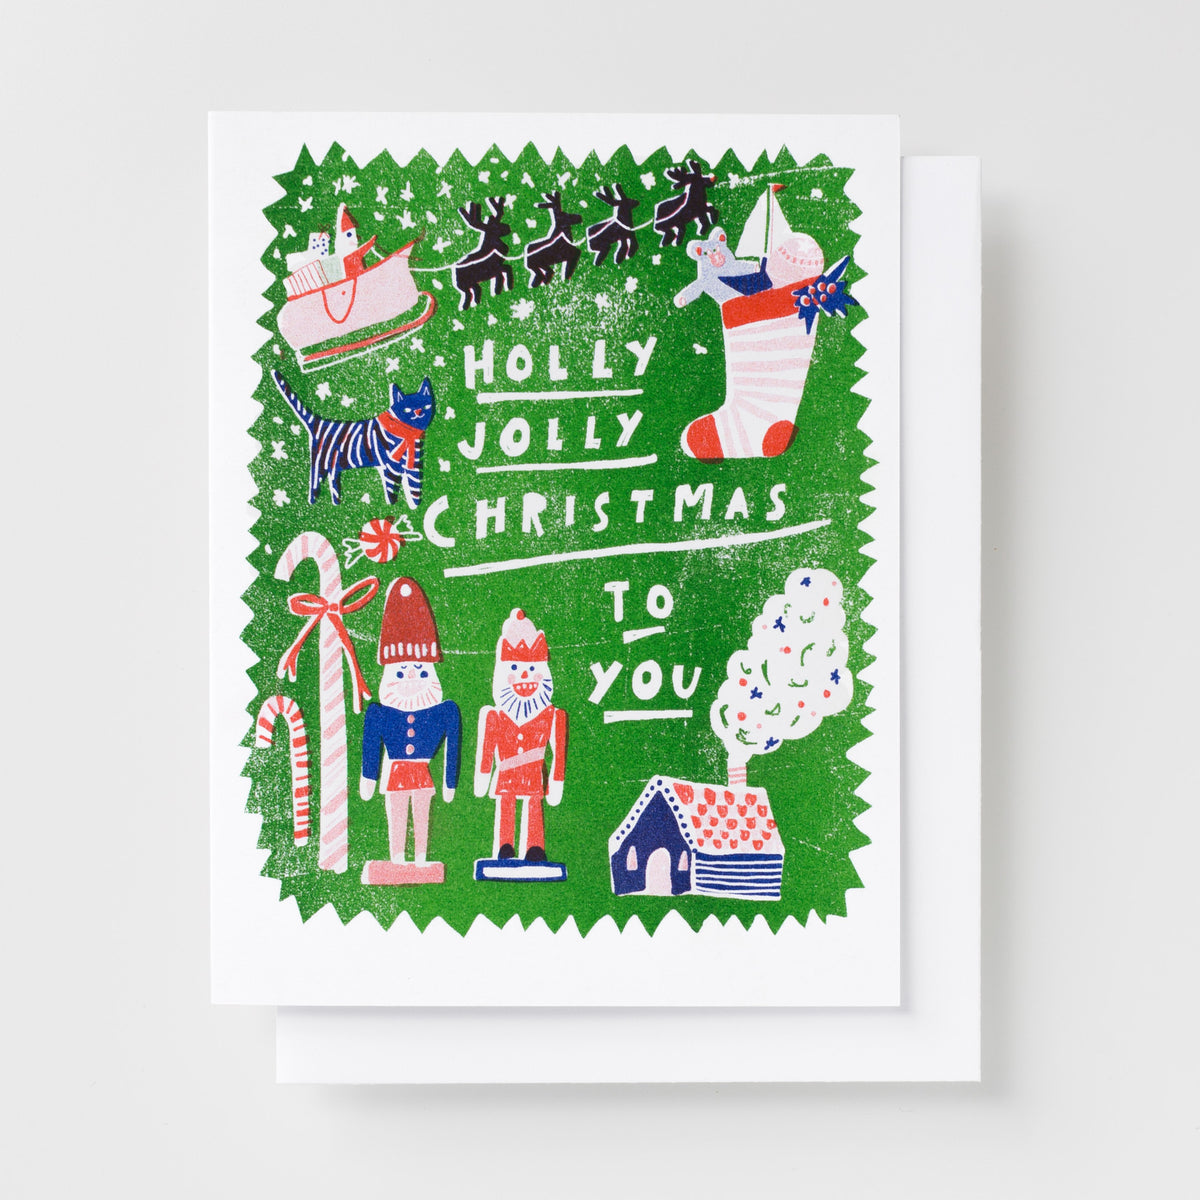 Holly Jolly Christmas.Holly Jolly Christmas Risograph Card